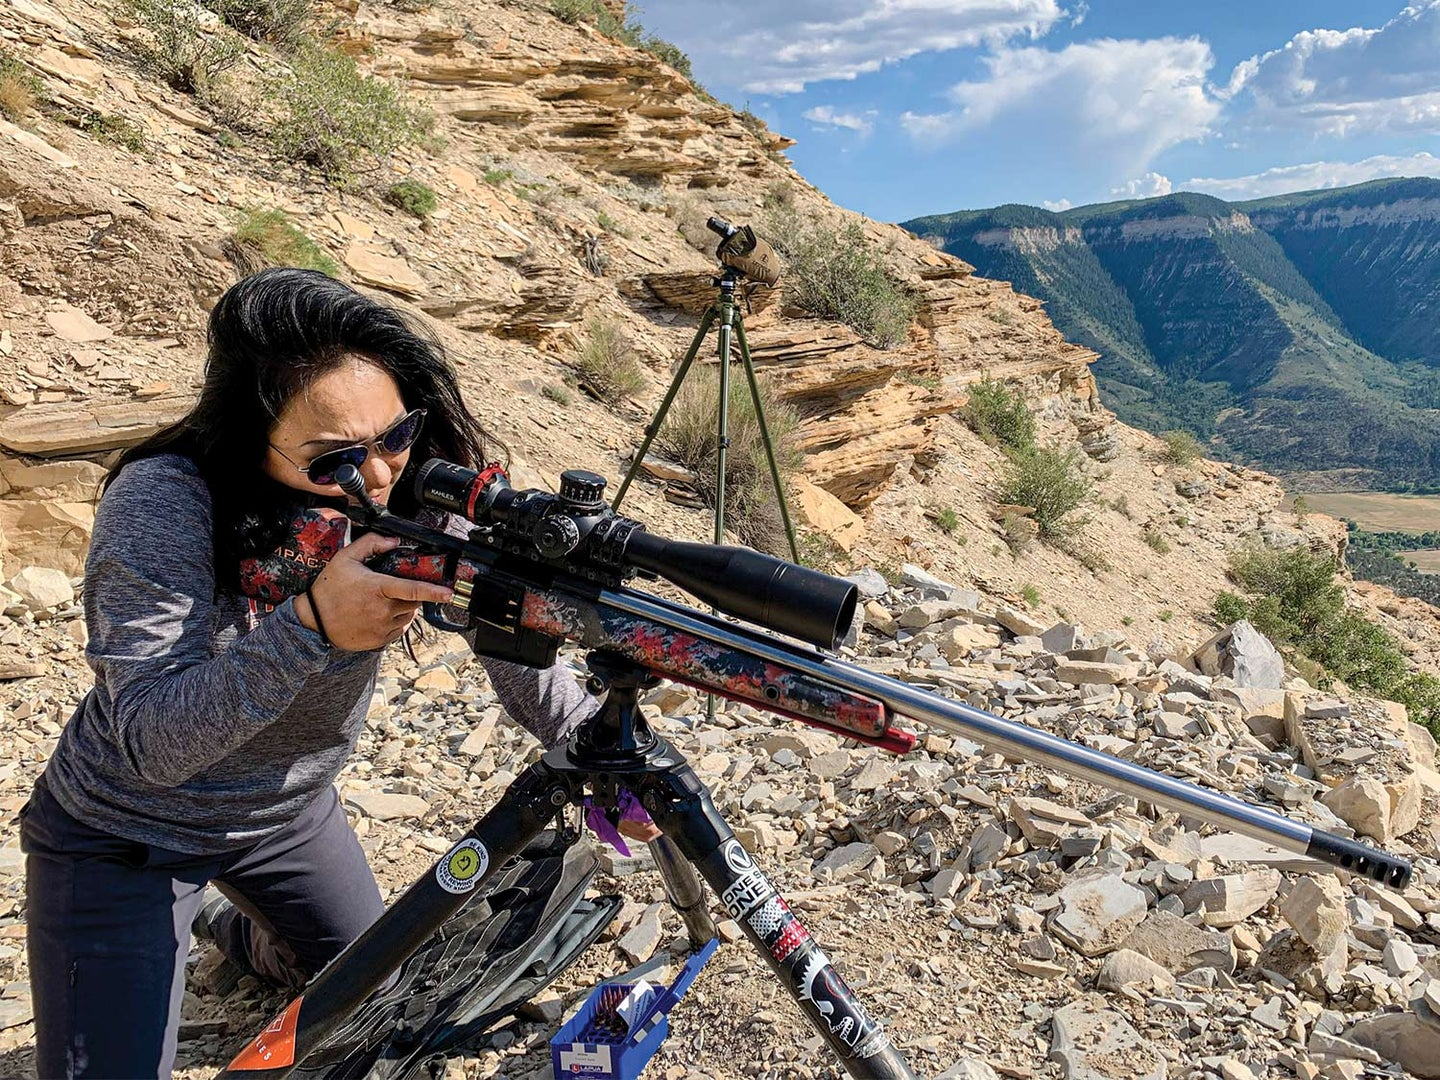 A woman wearing shooting protective gear, aims a rifle that is scoped and propped up on shooting sticks.